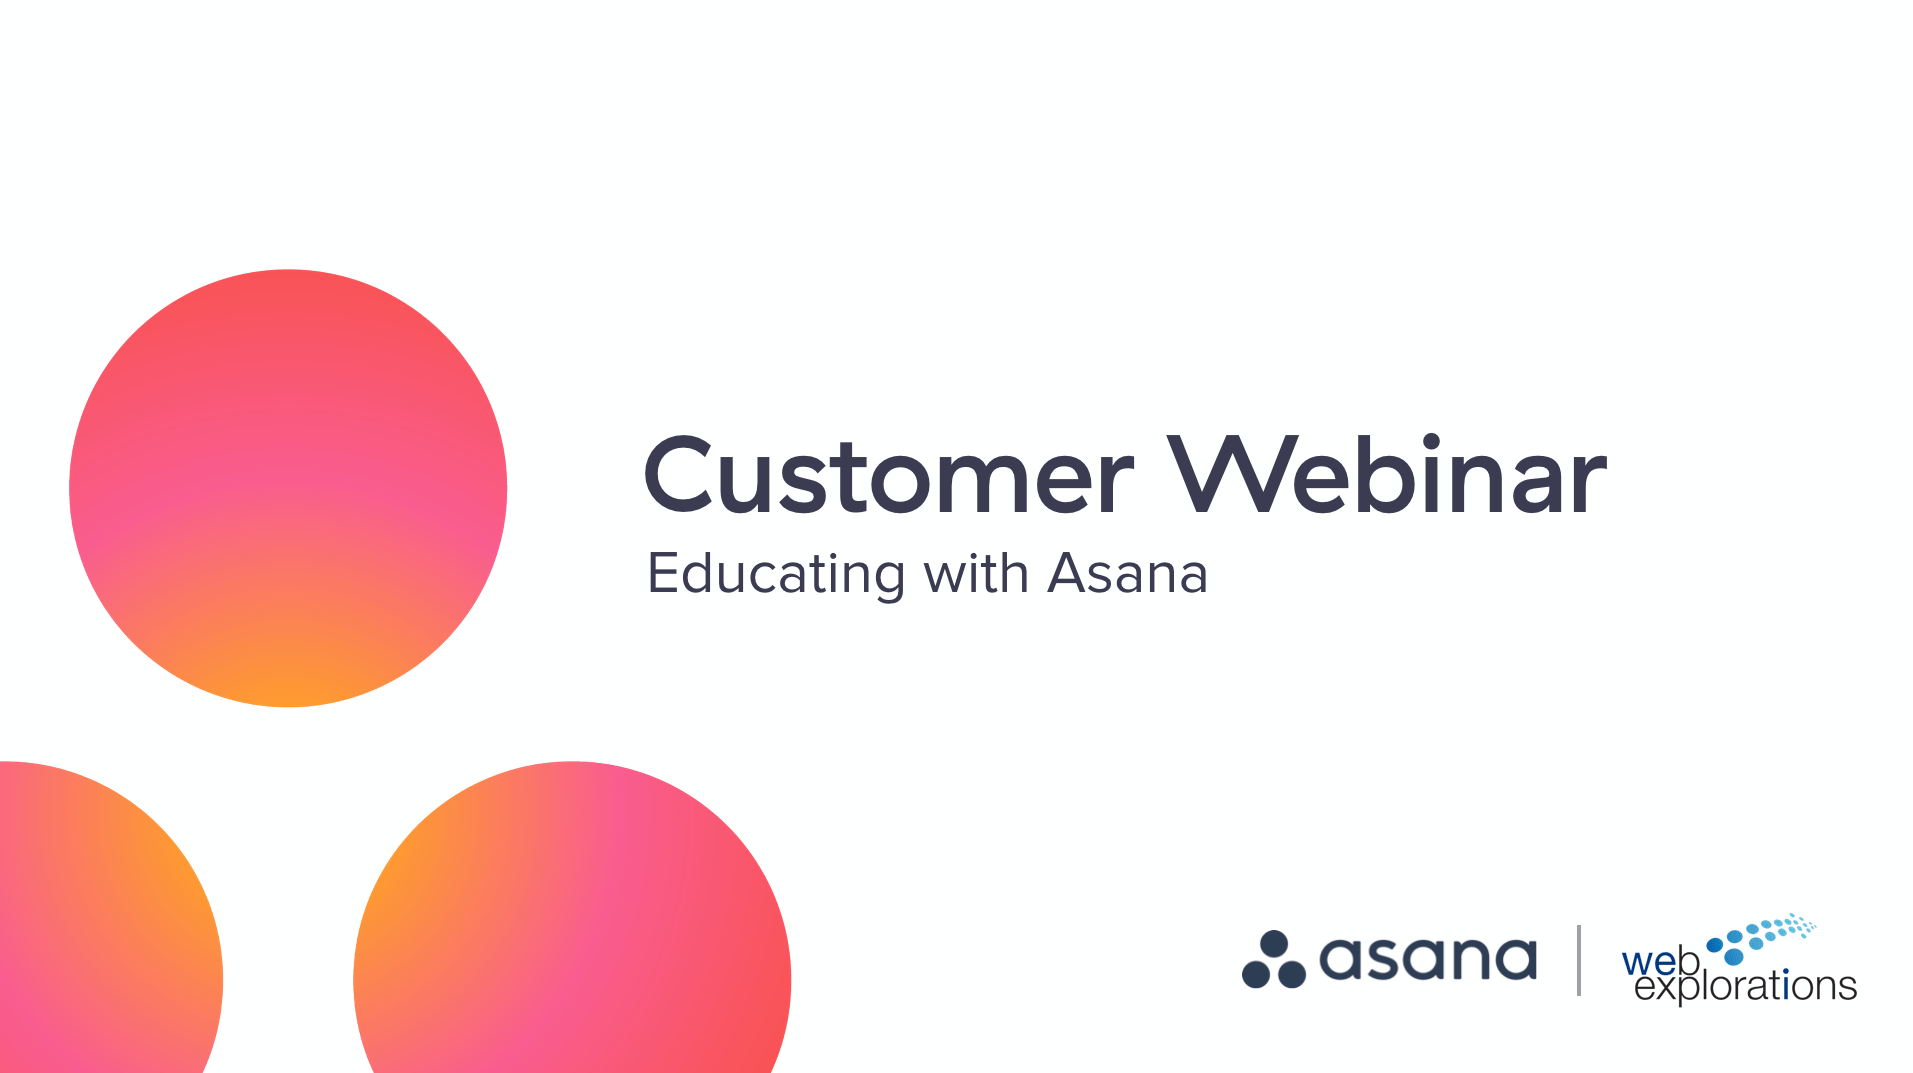 Educating in Asana with Web Explorations